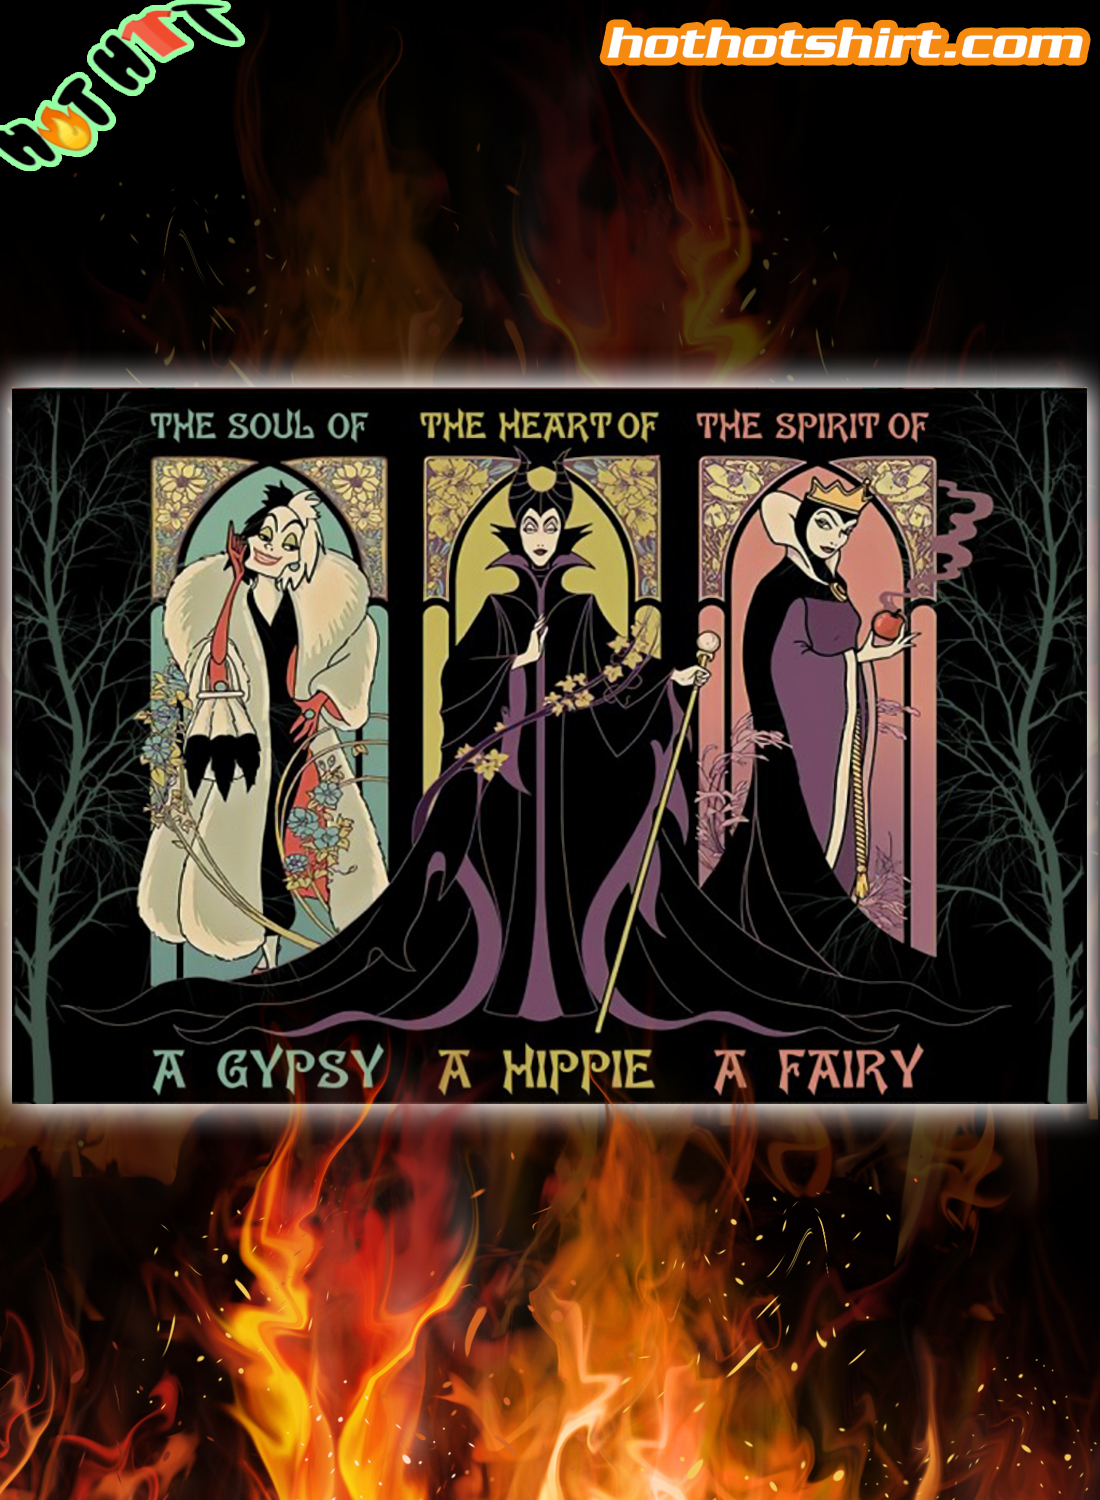 The queen cruella de vil The Soul of a Gypsy The Heart Of a Hippie The Spirit of a Fairy poster